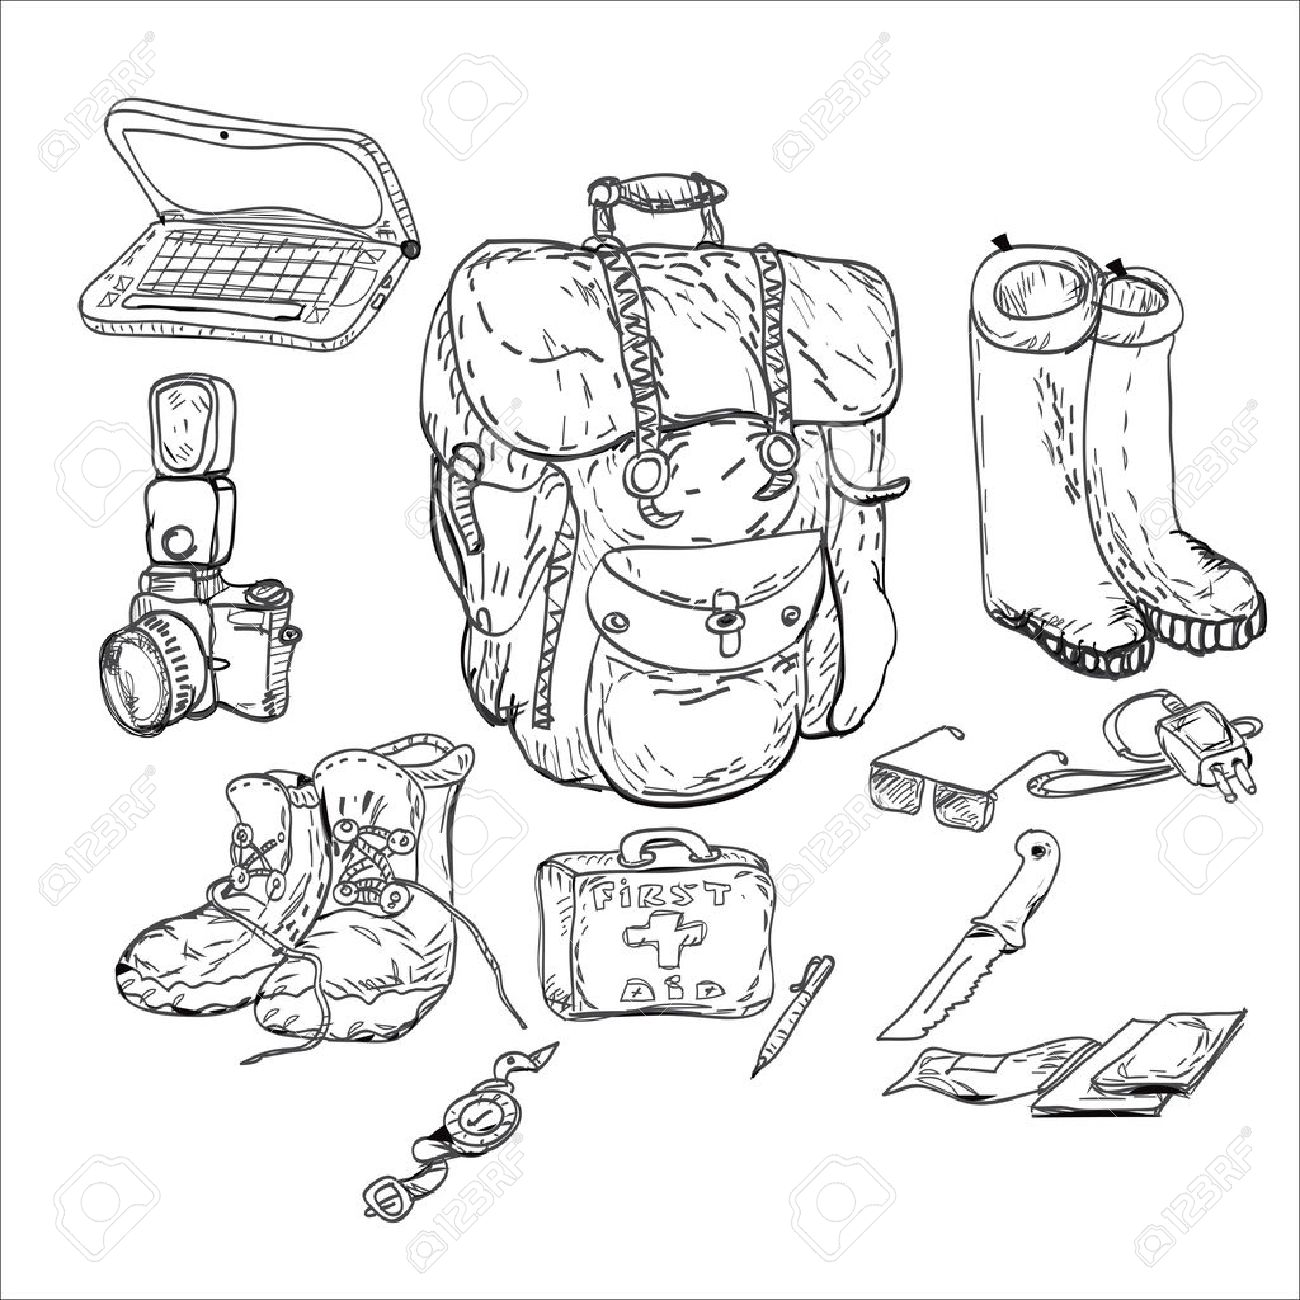 Survival Kit Clipart Black And White.